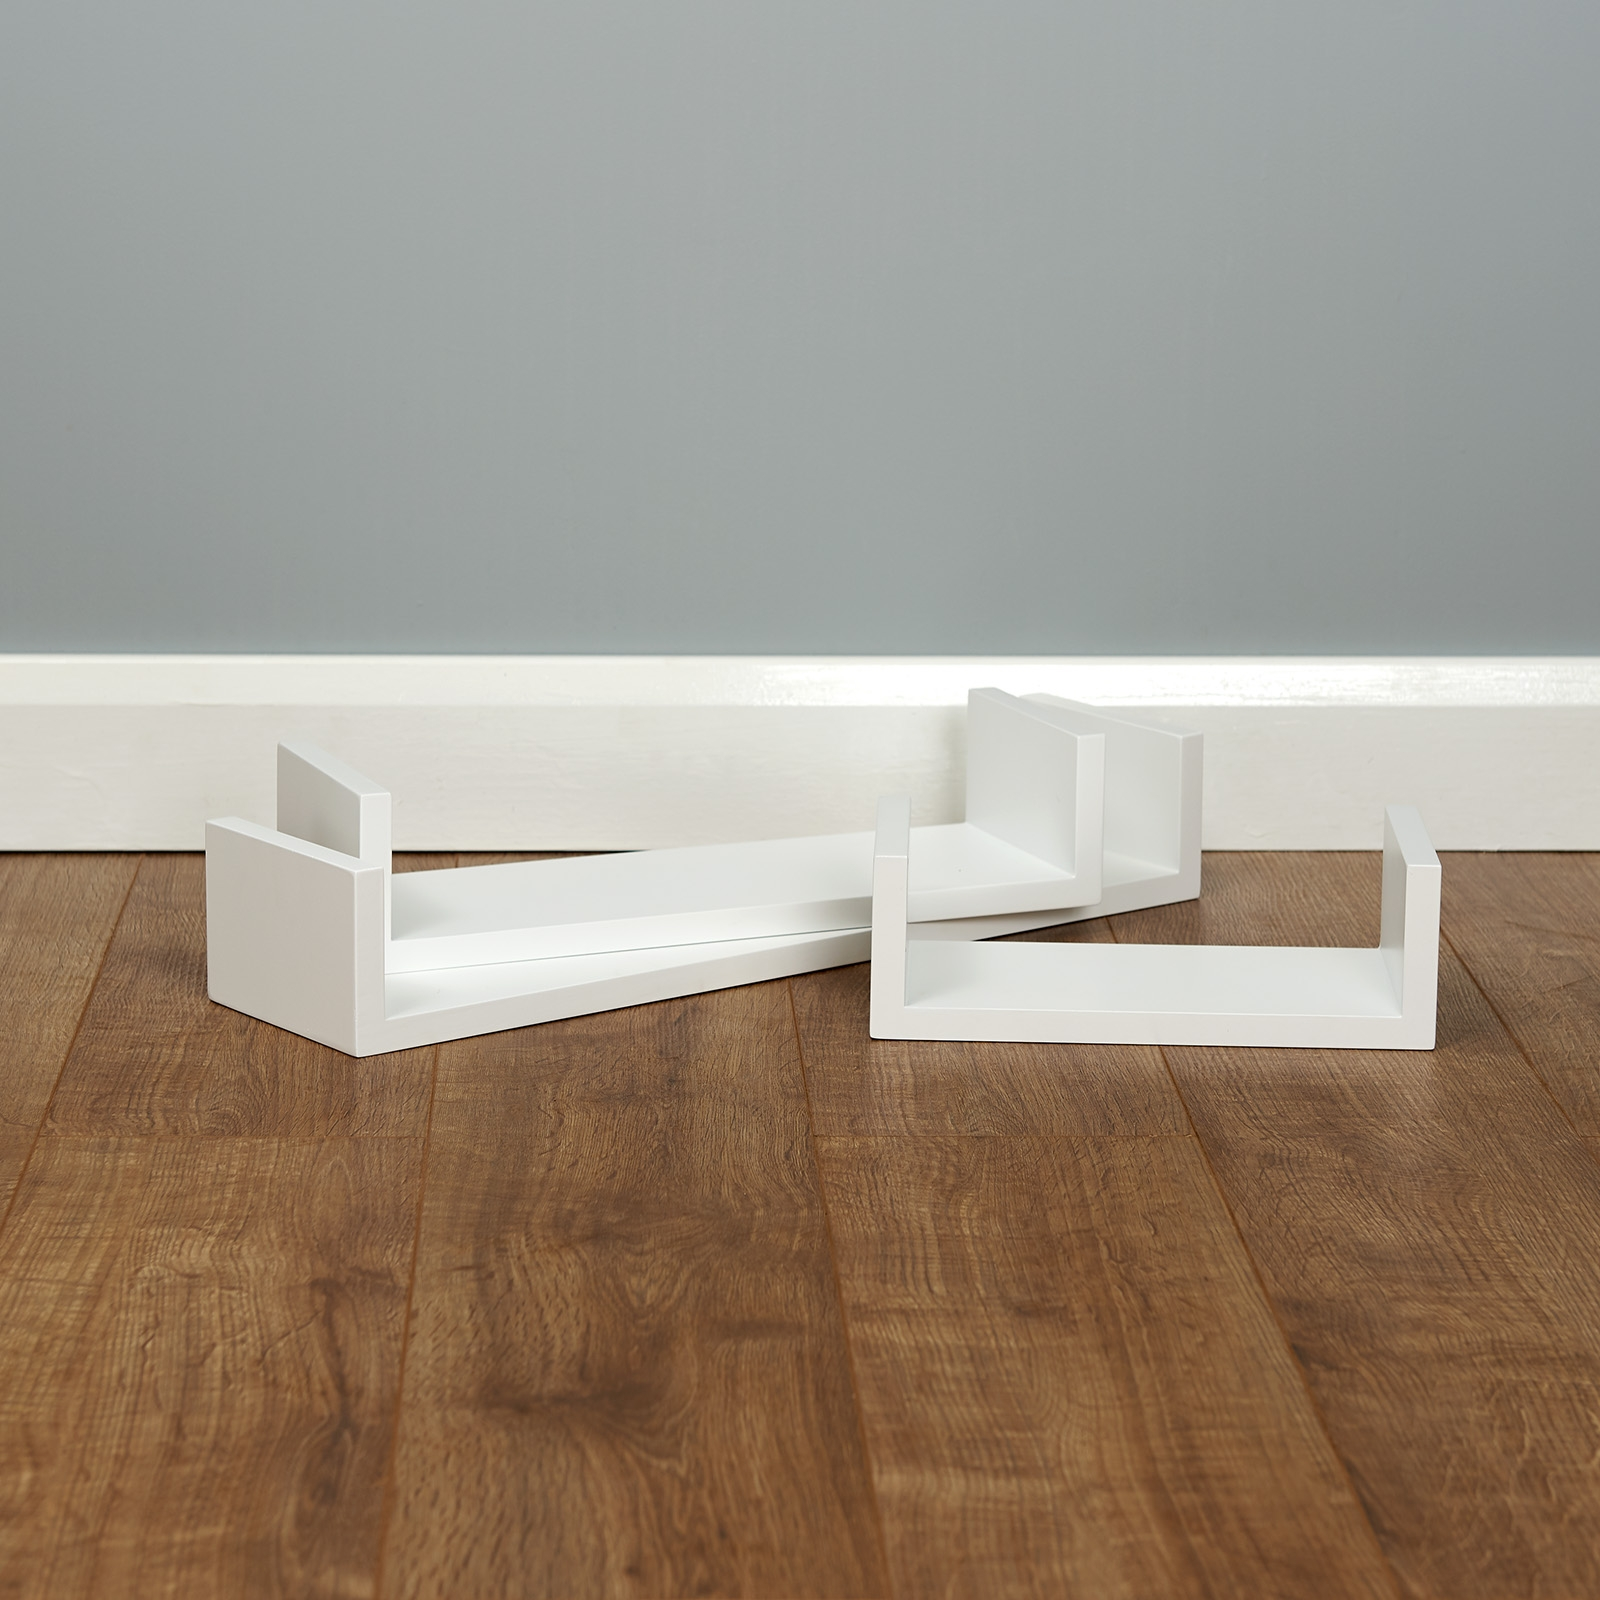 stunning modern white floating shelves on a wooden floor in a grey painted room